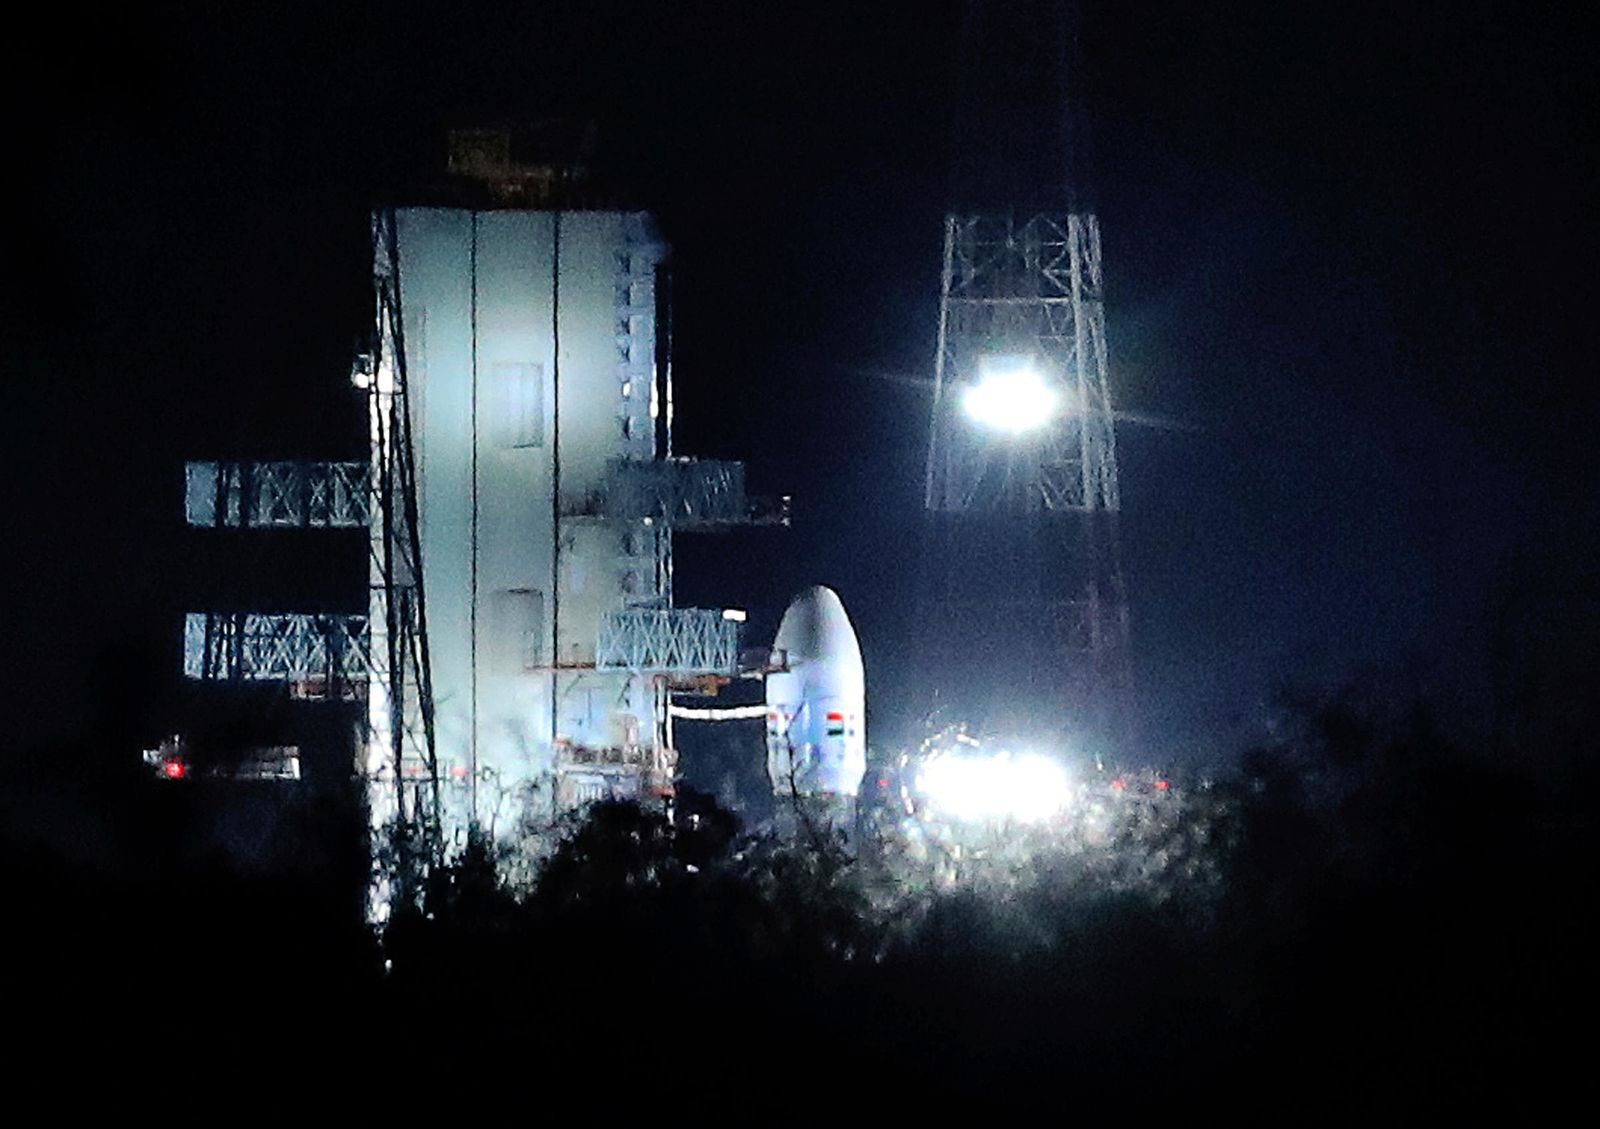 Indian Space Research Organization (ISRO)'s Geosynchronous Satellite launch Vehicle (GSLV) MkIII carrying Chandrayaan-2 stands at Satish Dhawan Space Center after the mission was aborted at the last minute at Sriharikota, in southern India, Monday, July 15, 2019.{ } (AP Photo/Manish Swarup)